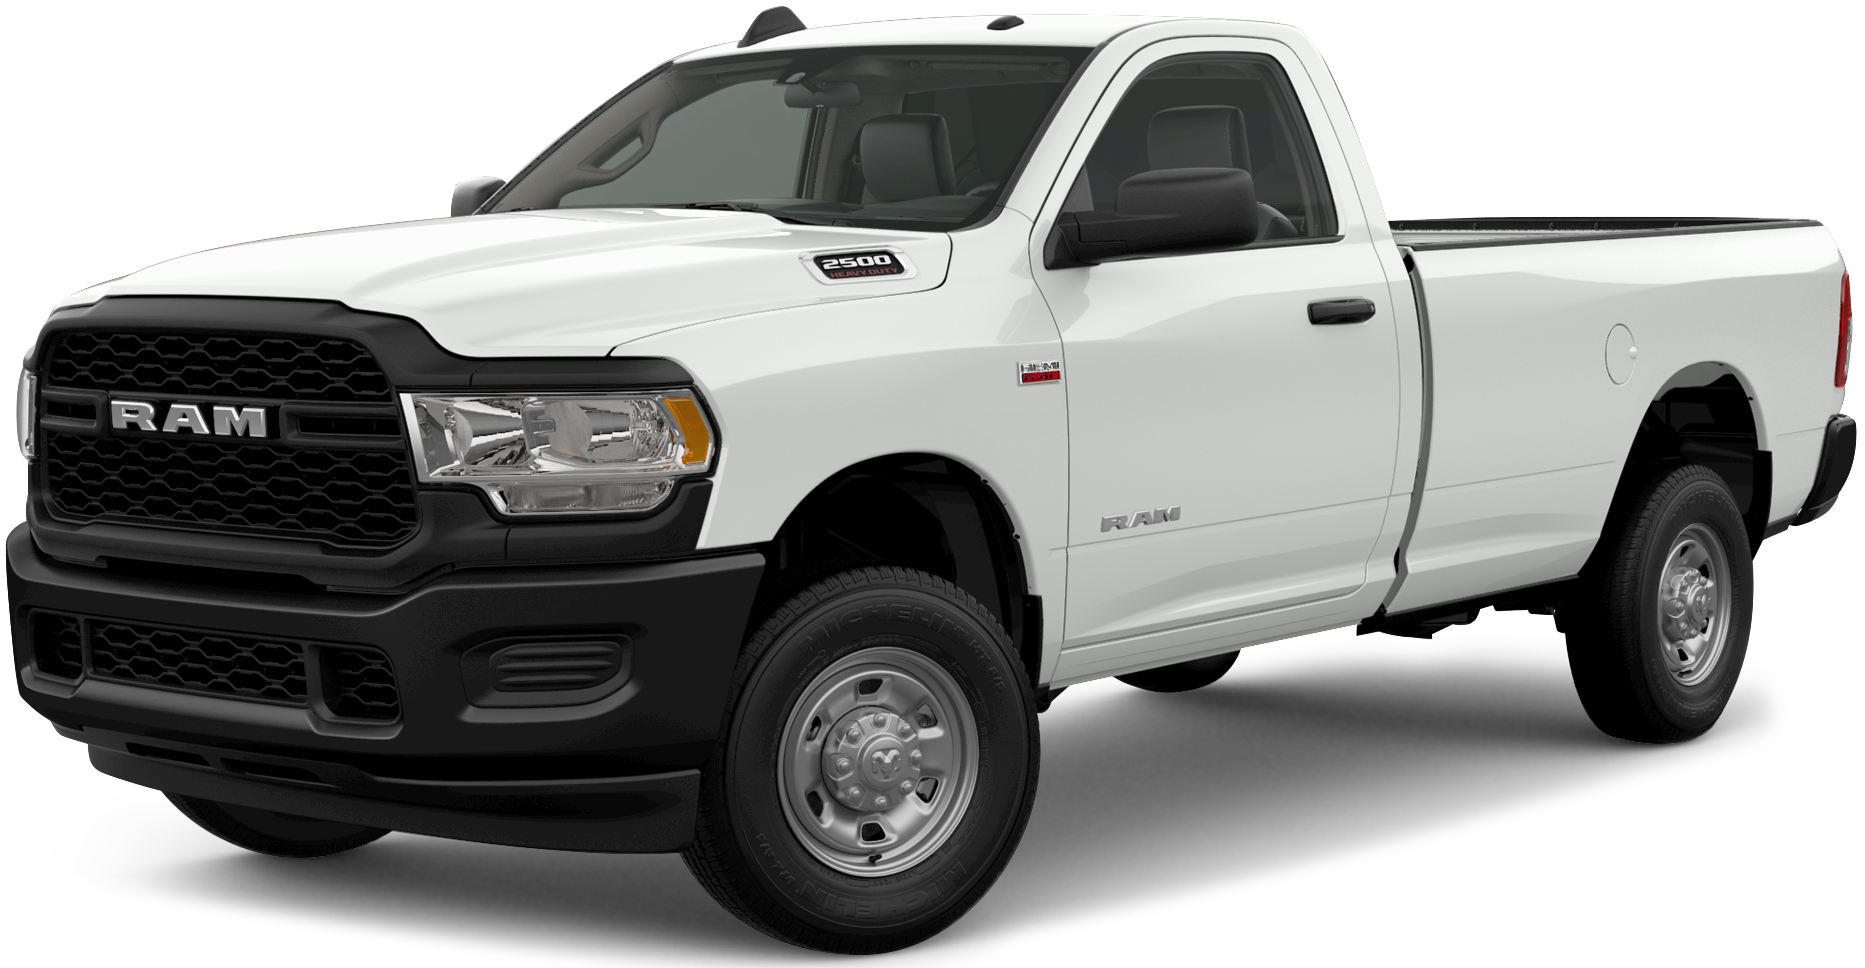 2021 Ram 2500 Incentives Specials Offers In Slatington Pa